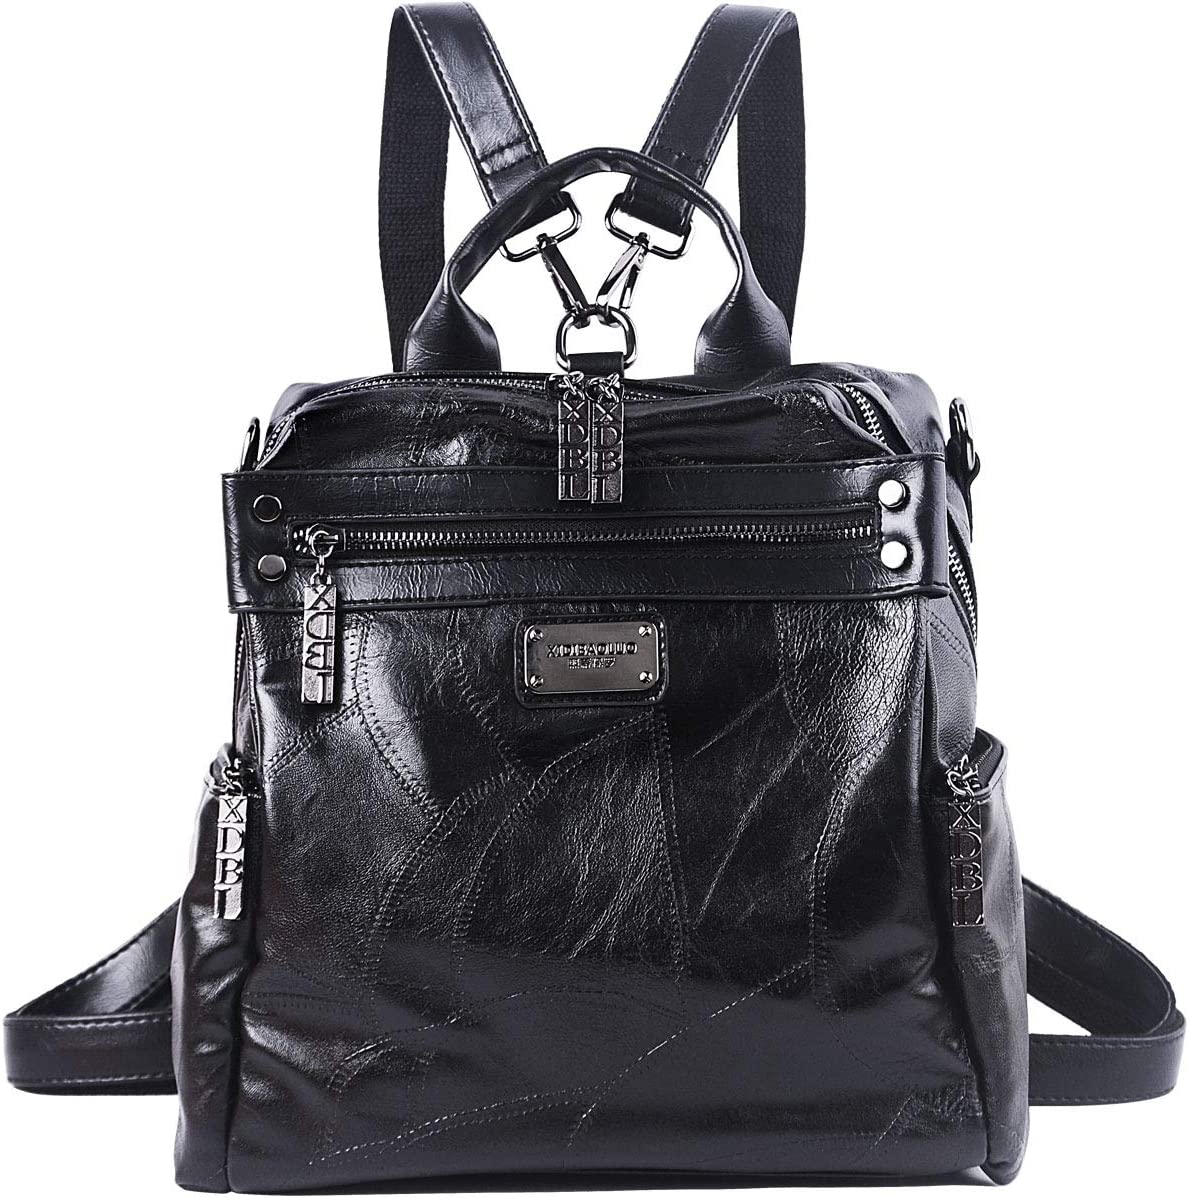 Leather gray backpack Backpack transformer Women mini Backpack women backpack briefcase Mini briefcase